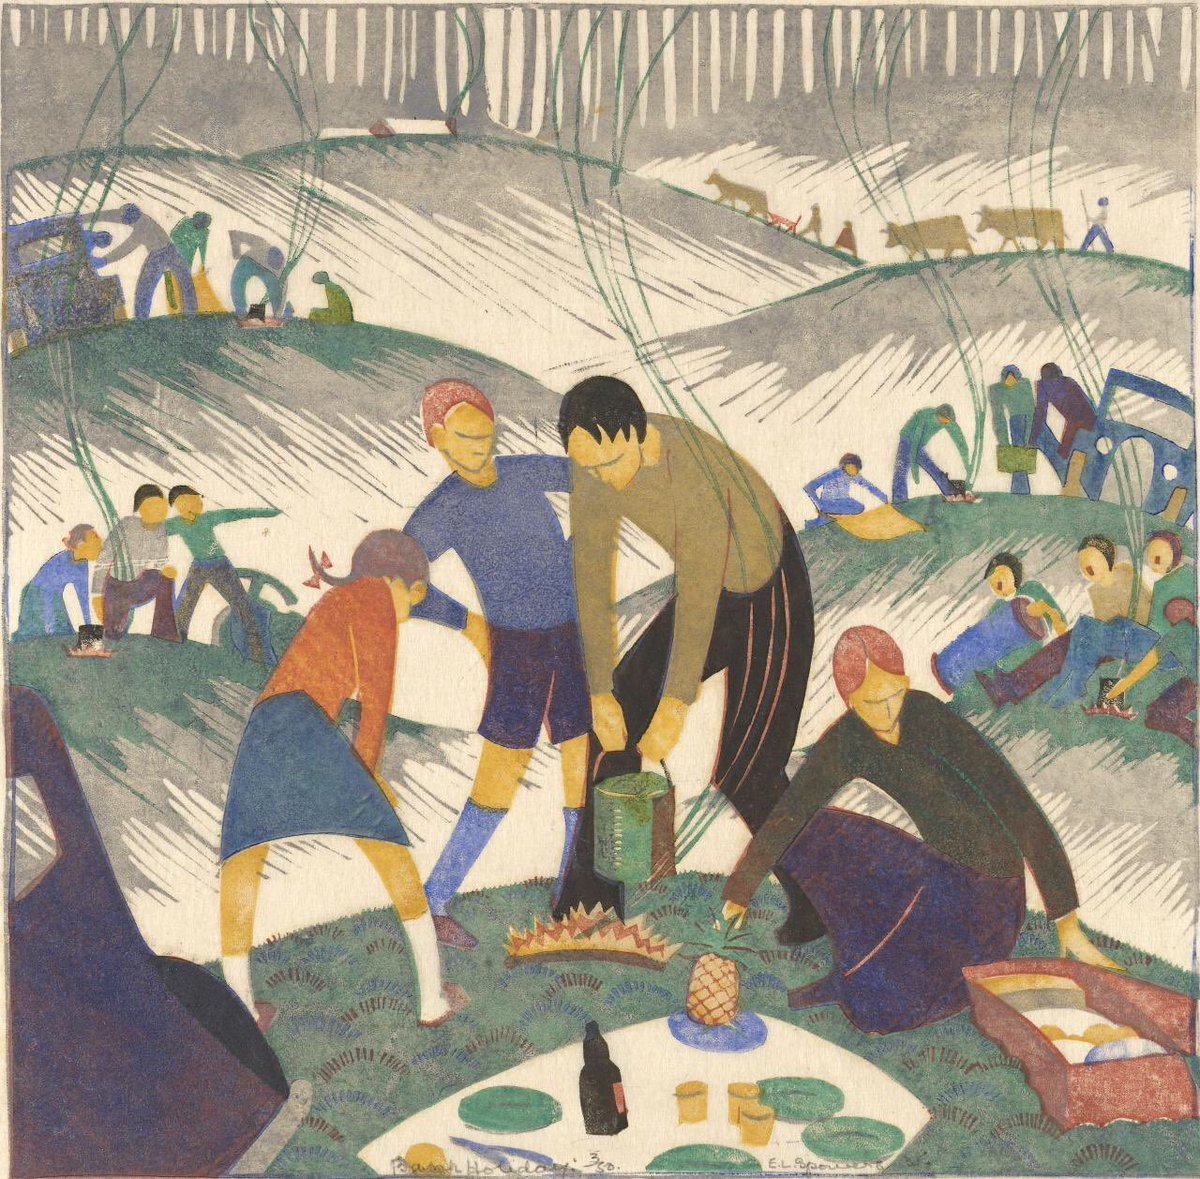 Bank holiday Ethel Spowers (1890 - 1947)